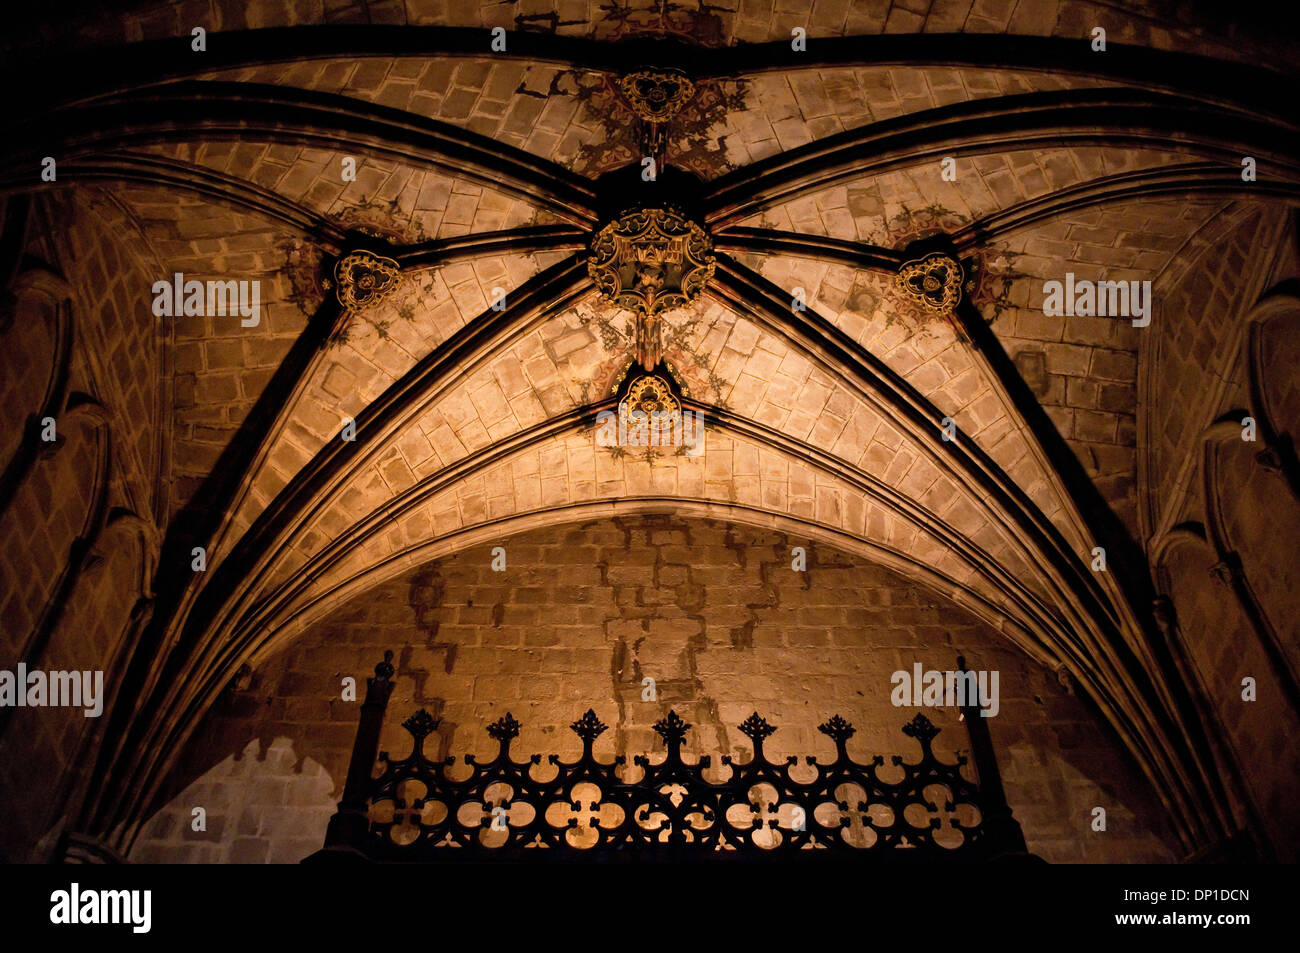 Cathedral interior, ribbed vault ceiling, Barcelona, Spain - Stock Image